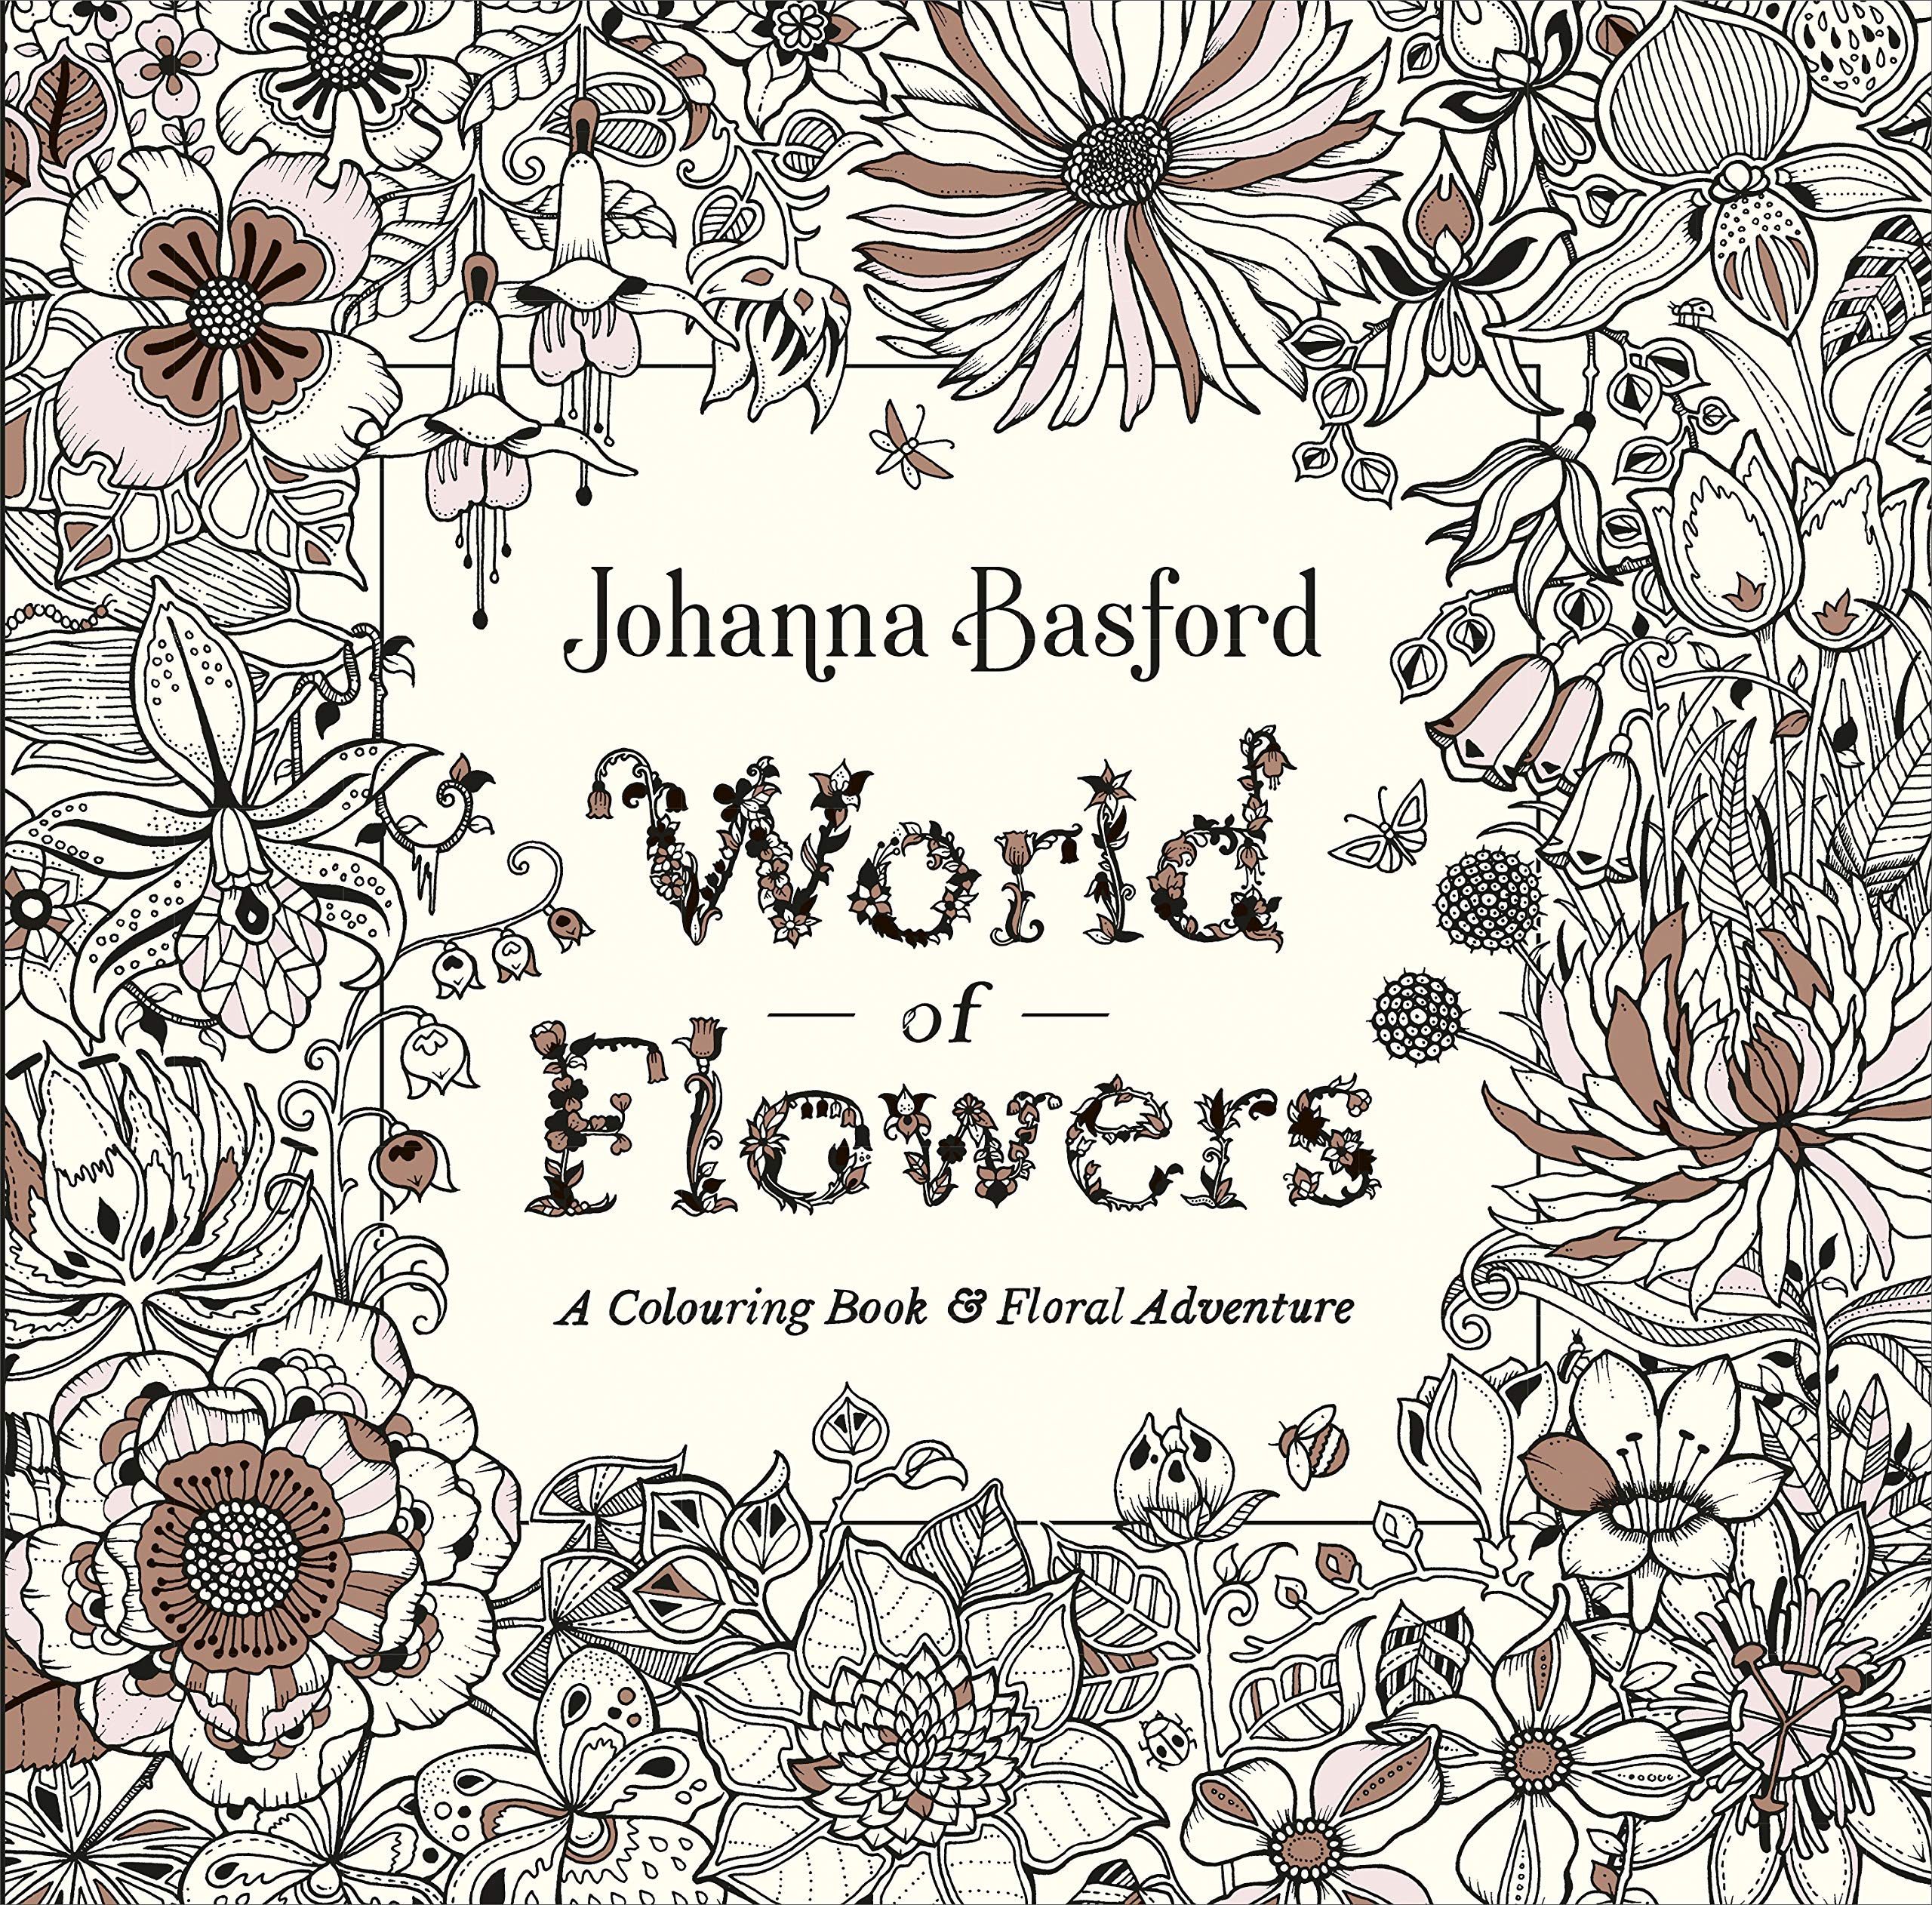 World Of Flowers A Colouring Book And Floral Adventure Amazon De